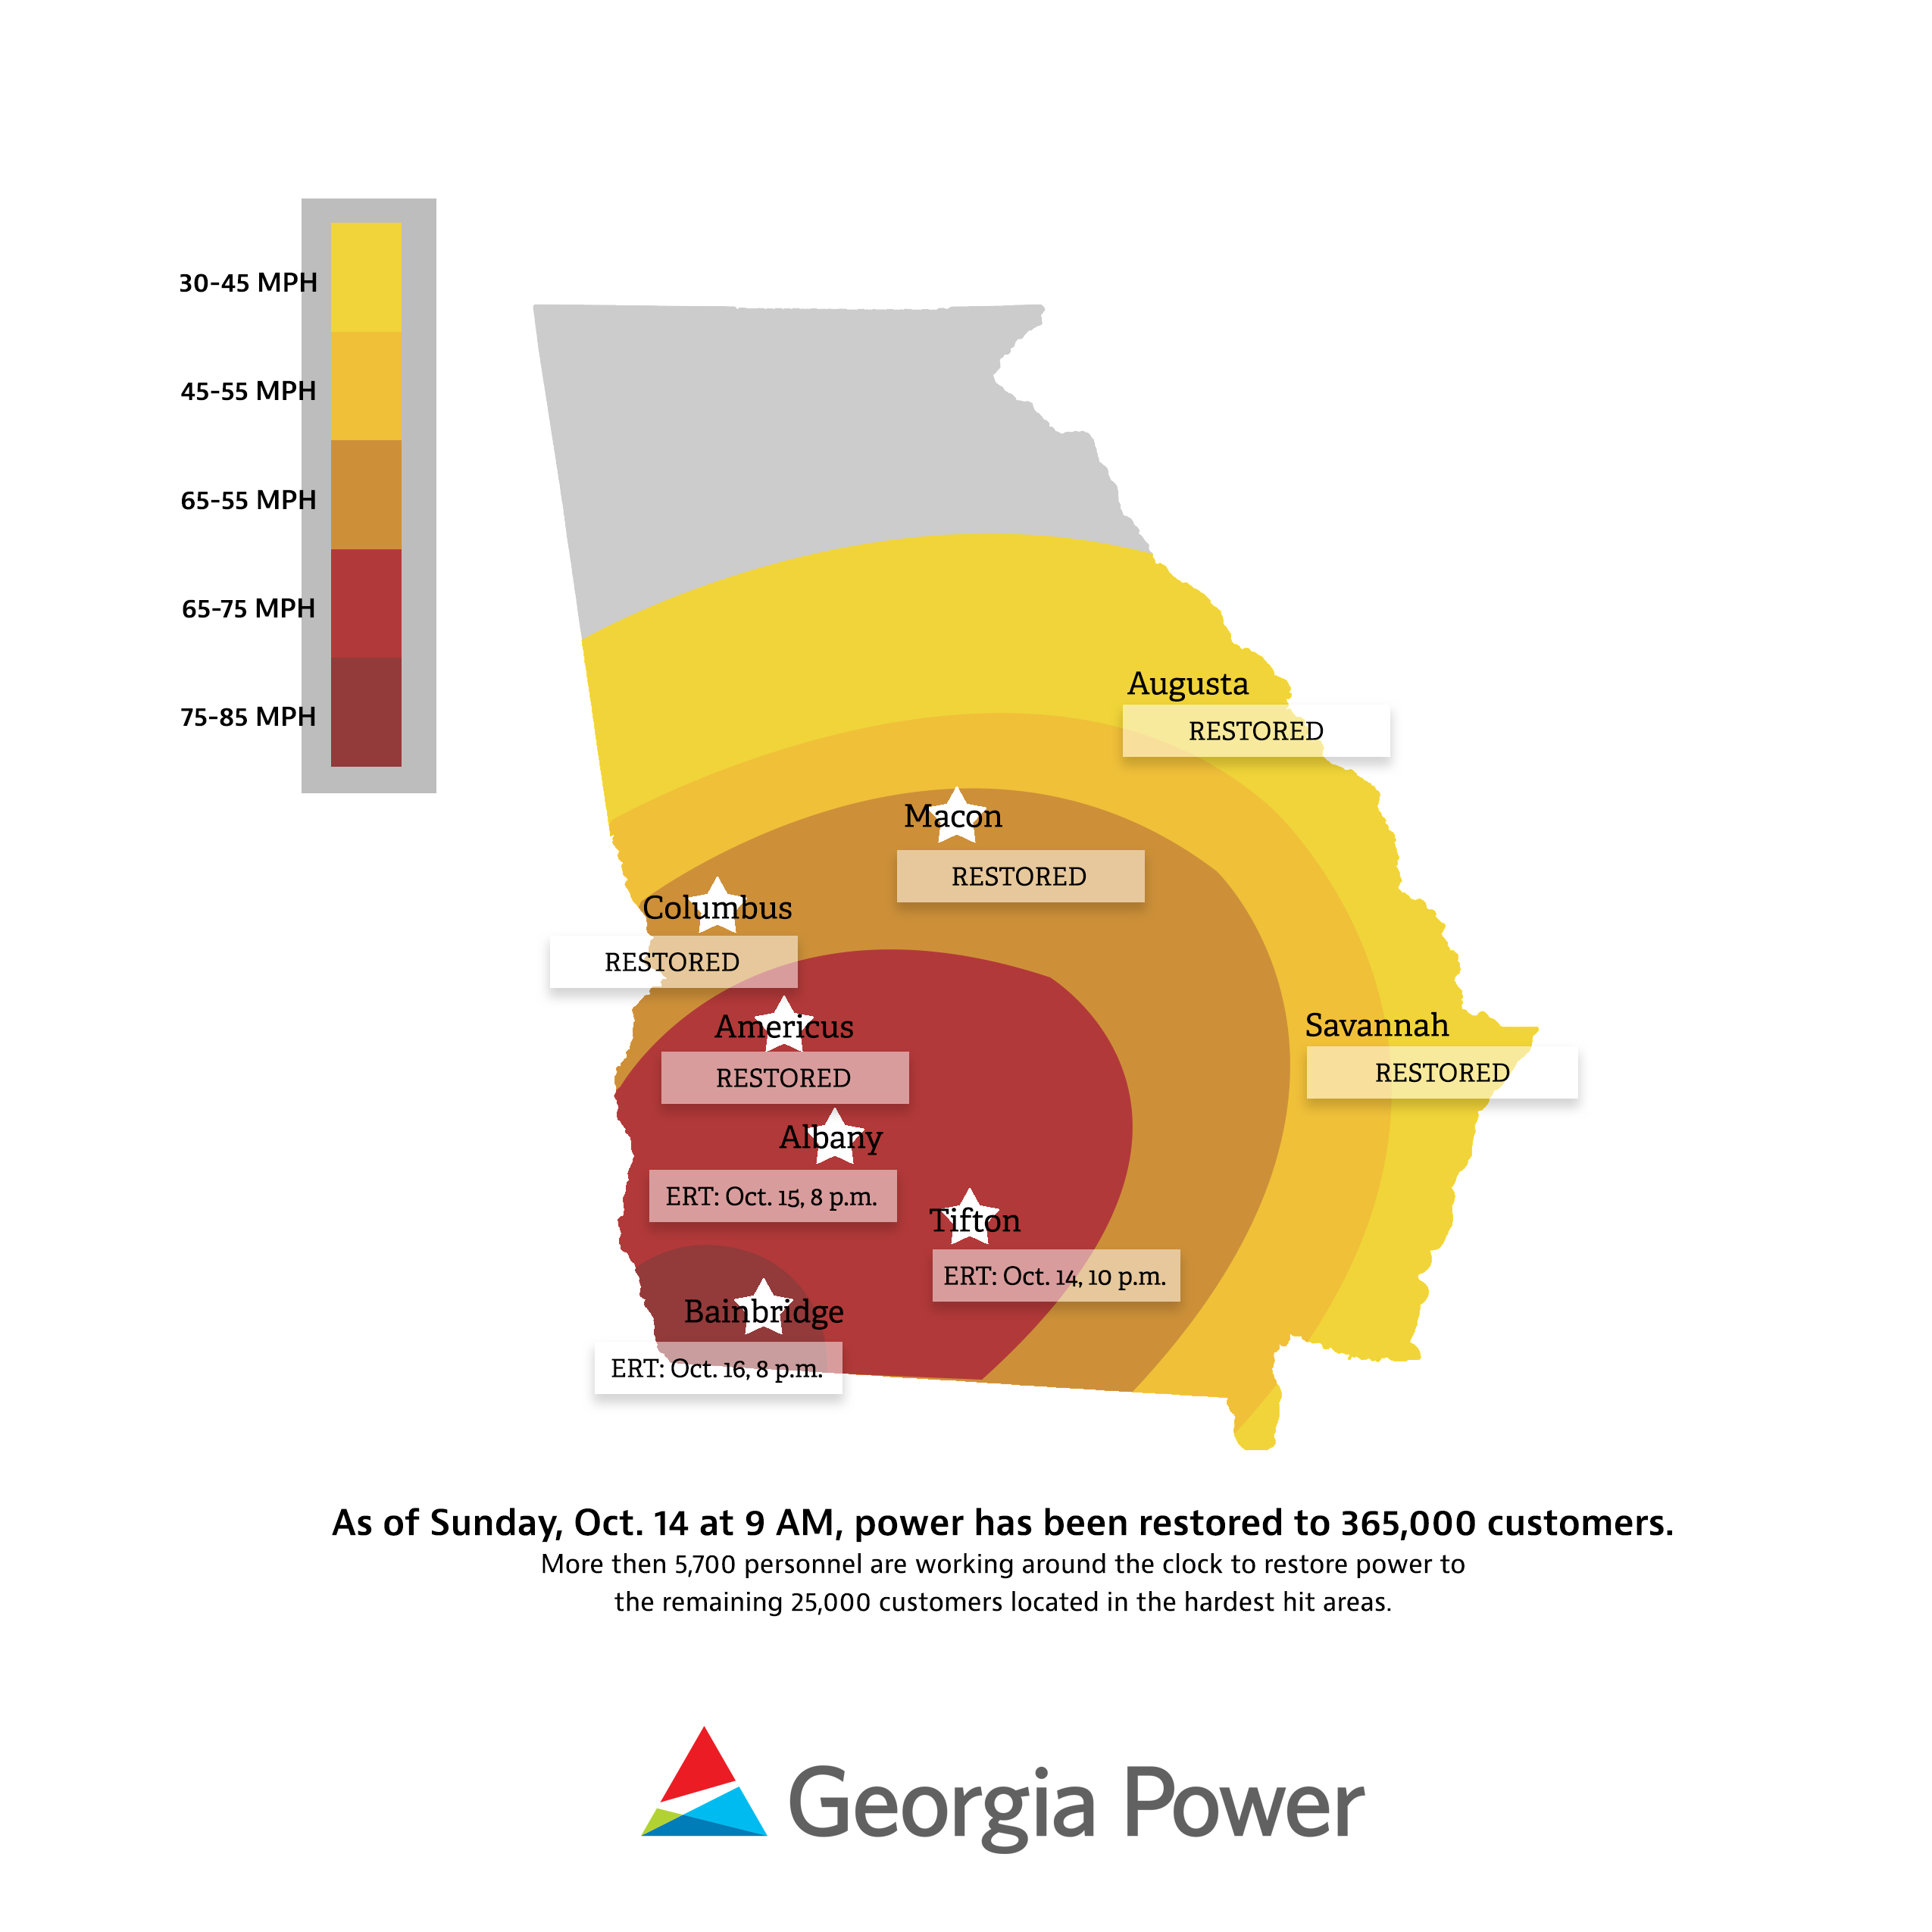 Ga Power Transformer Wiring Diagram Opinions About 45 Kva Restored To 365 000 Georgia Customers Rh Georgiapower Com Current